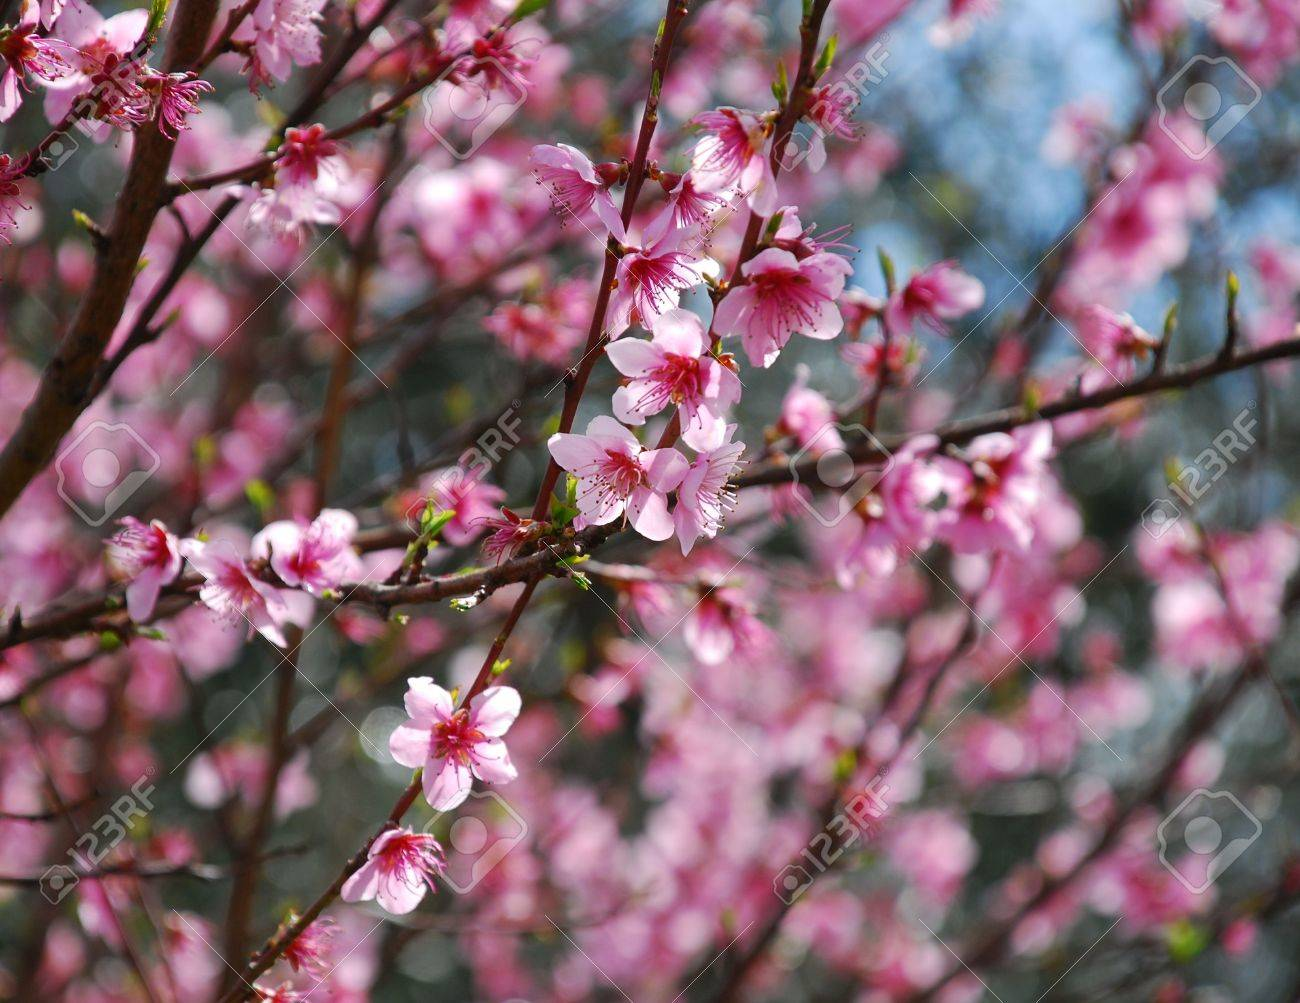 A Fruit Tree Blossoming With Small Pink Flowers In Spring Stock